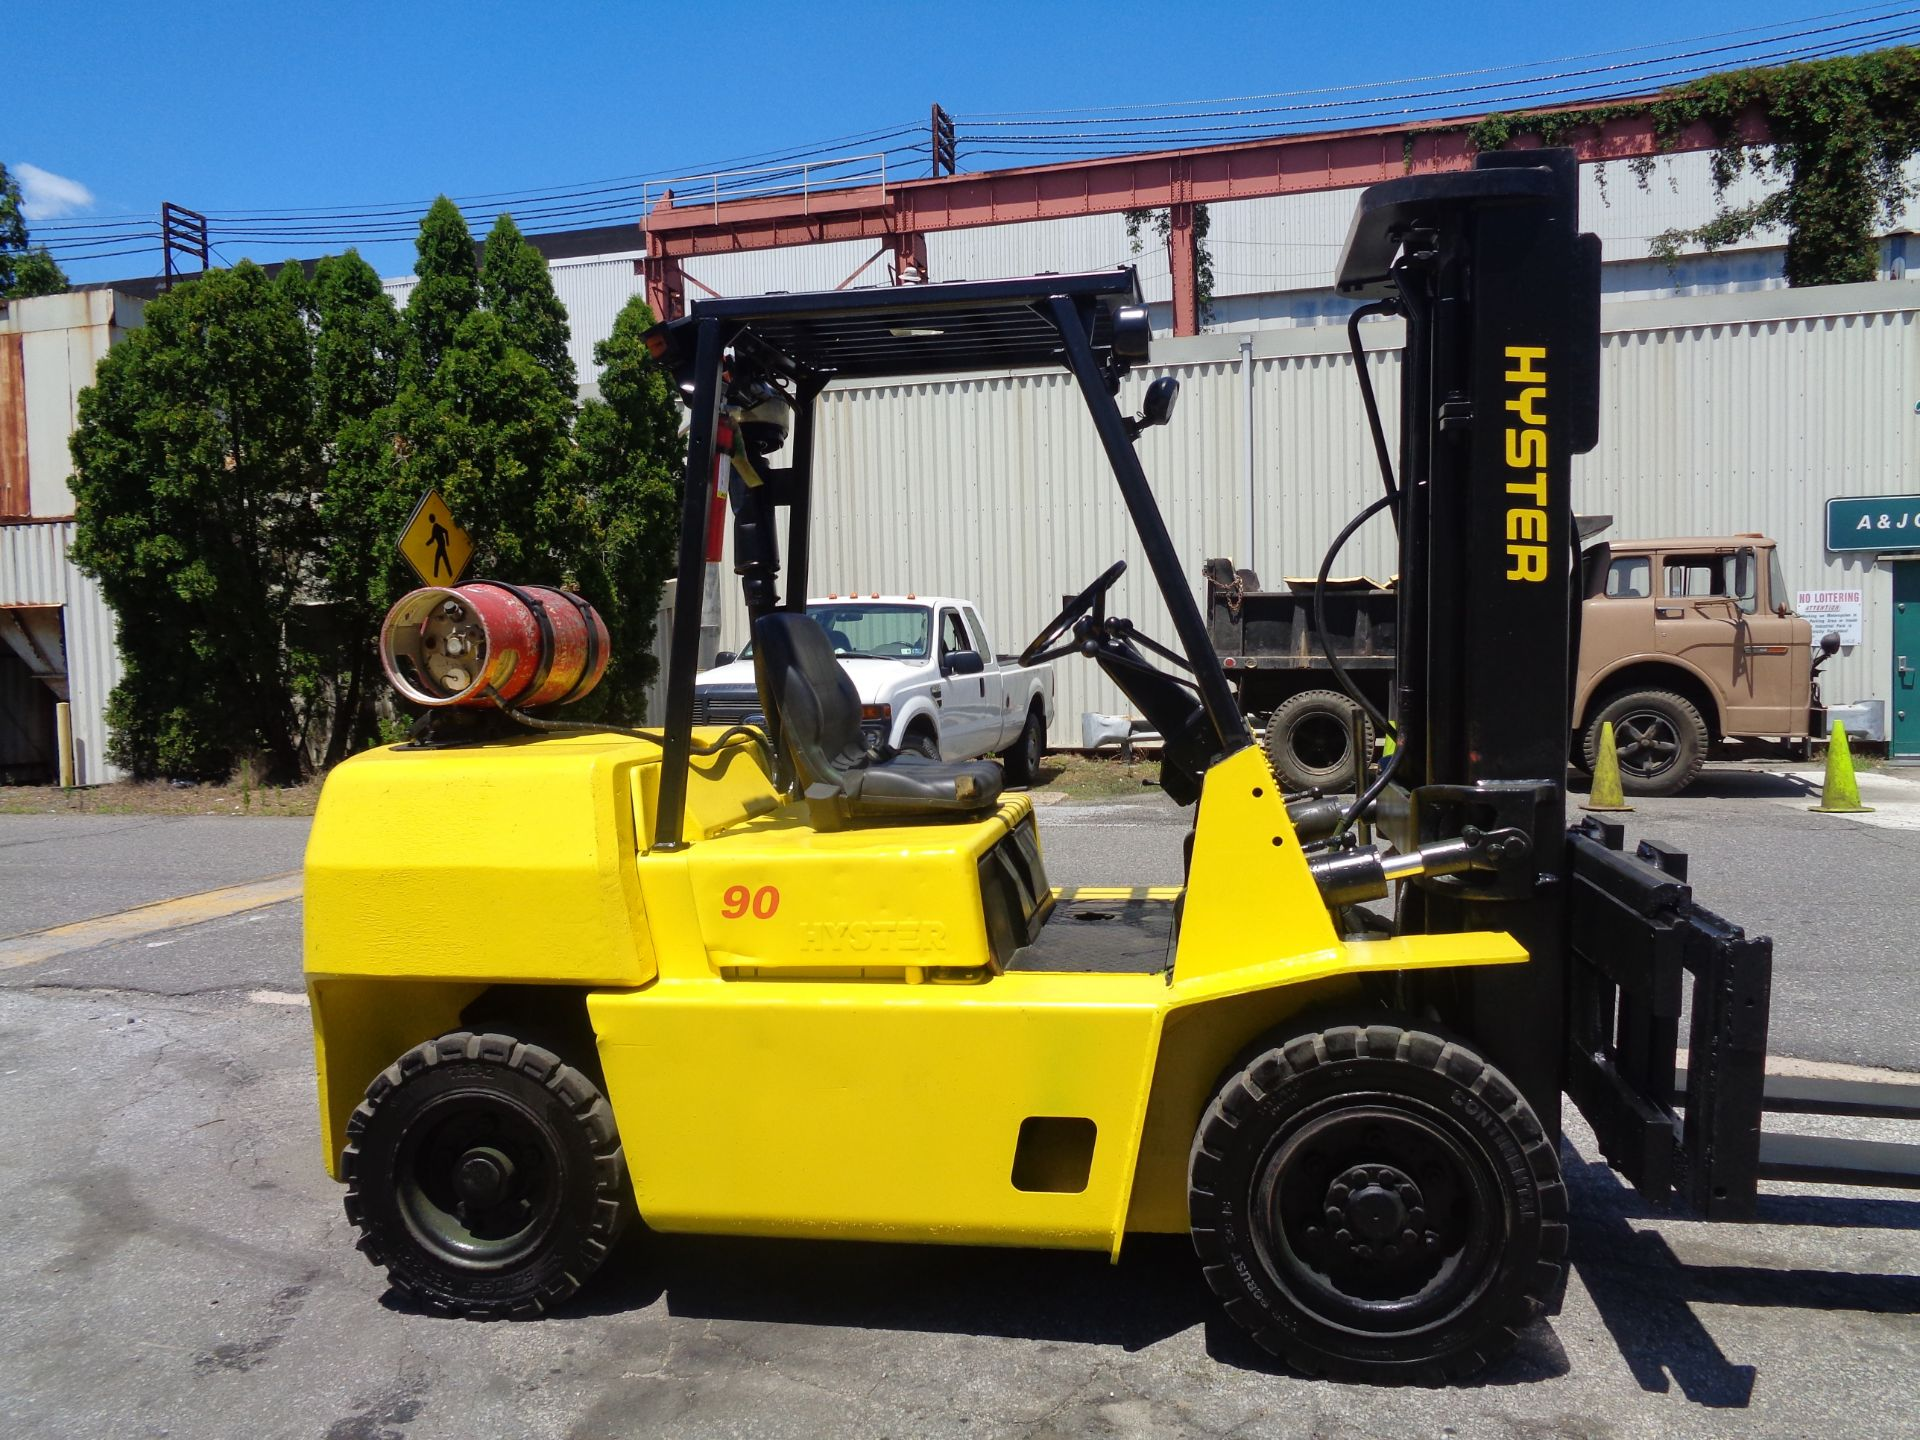 Hyster H90XLS Forklift 9,000 lbs - Image 7 of 13